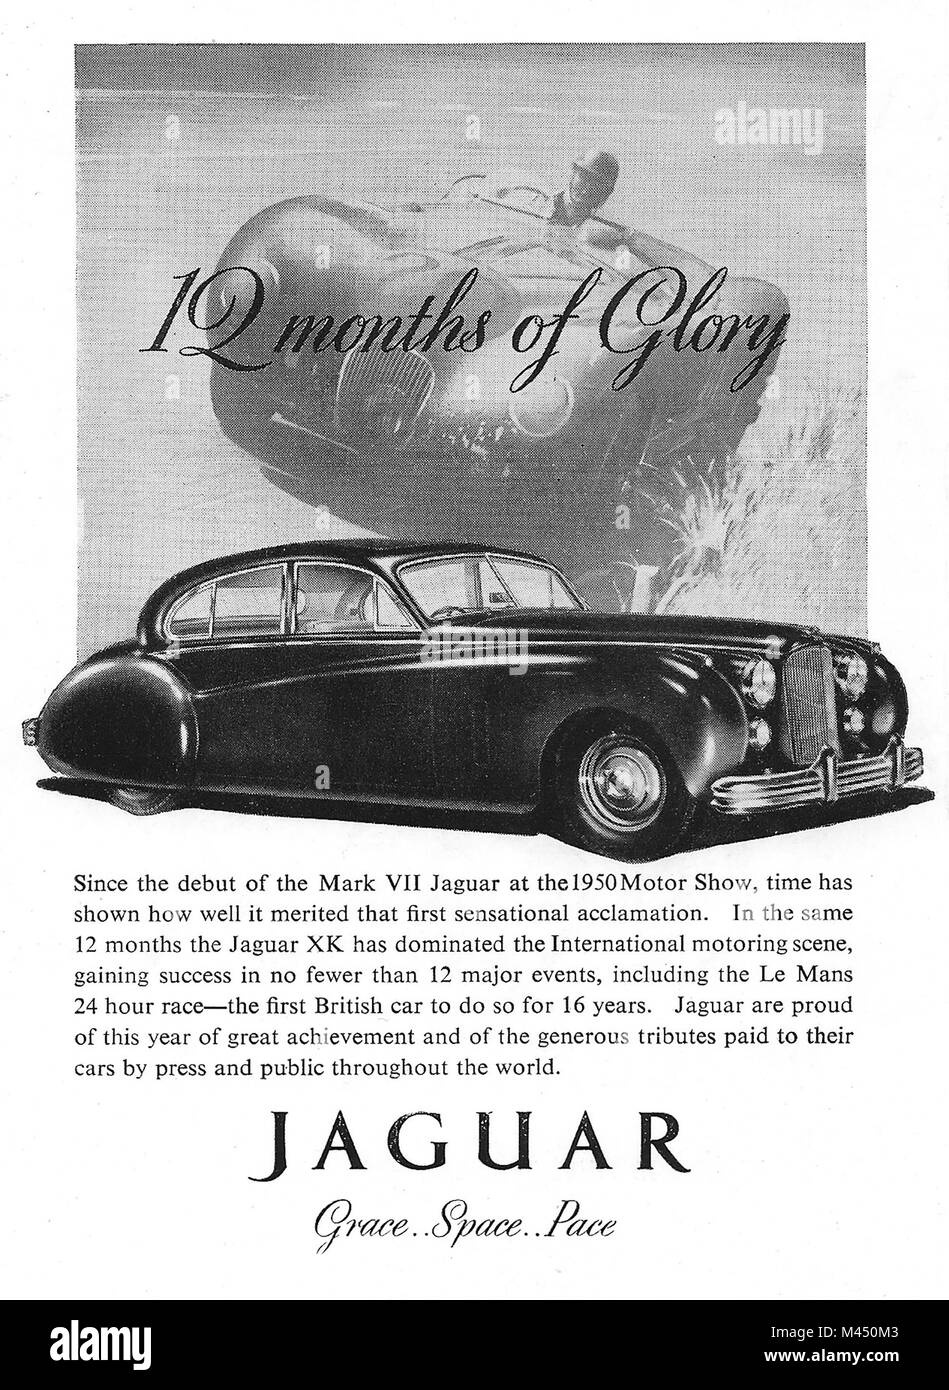 Jaguar '12 months of glory' car advert, advertising in Country Life magazine UK 1951 - Stock Image